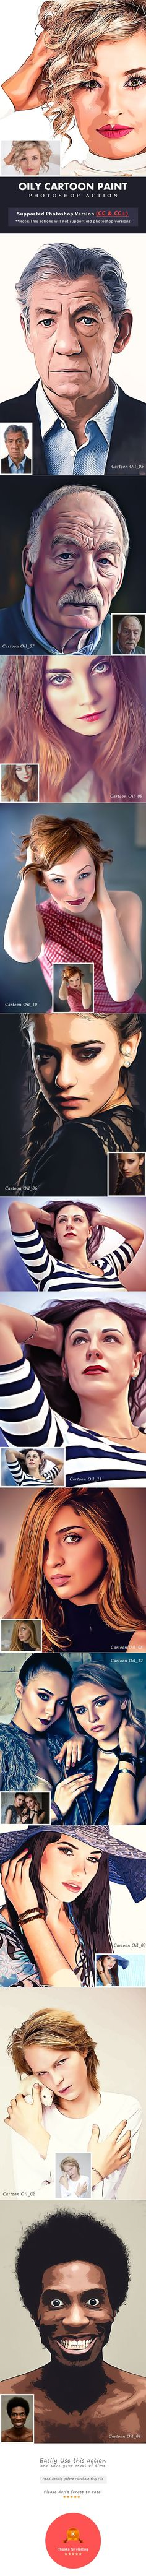 Oily Cartoon Paint Action - #Photo Effects #Actions Download here: https://graphicriver.net/item/oily-cartoon-paint-action/19453435?ref=alena994